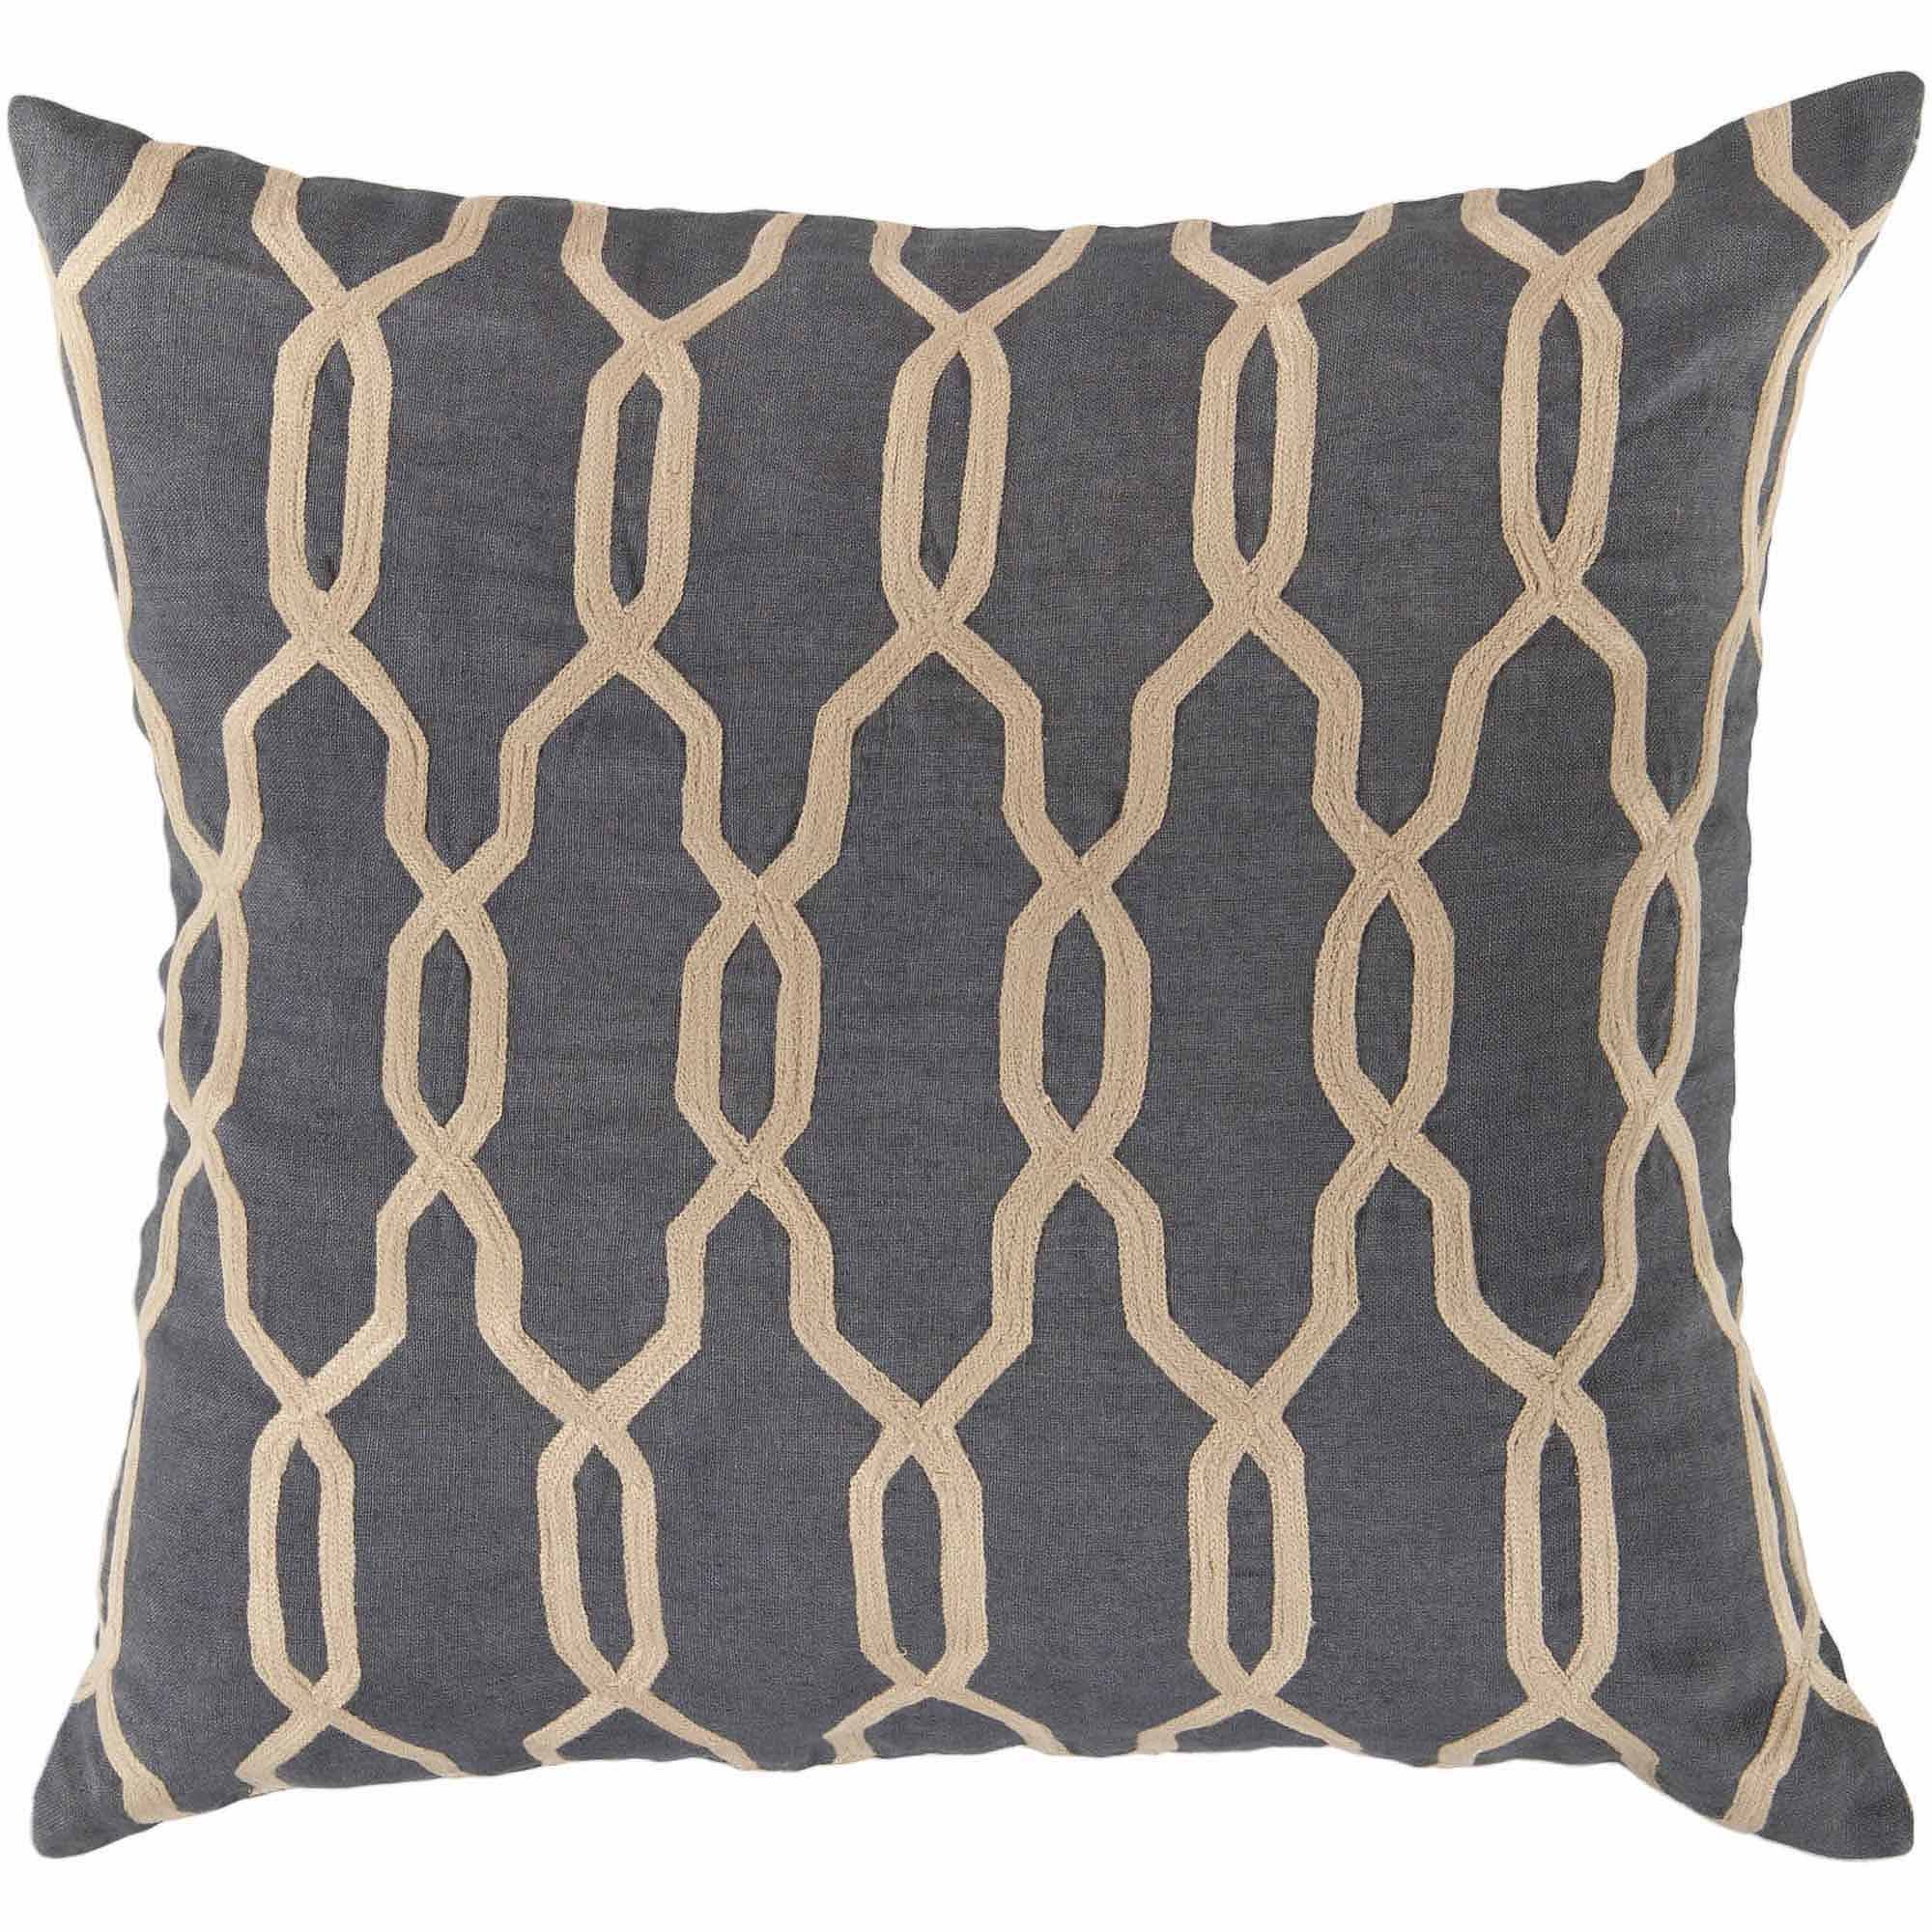 Art of Knot Amherst Hand Crafted Geometric Lattice Linen Decorative Pillow with Poly Filler, Beige